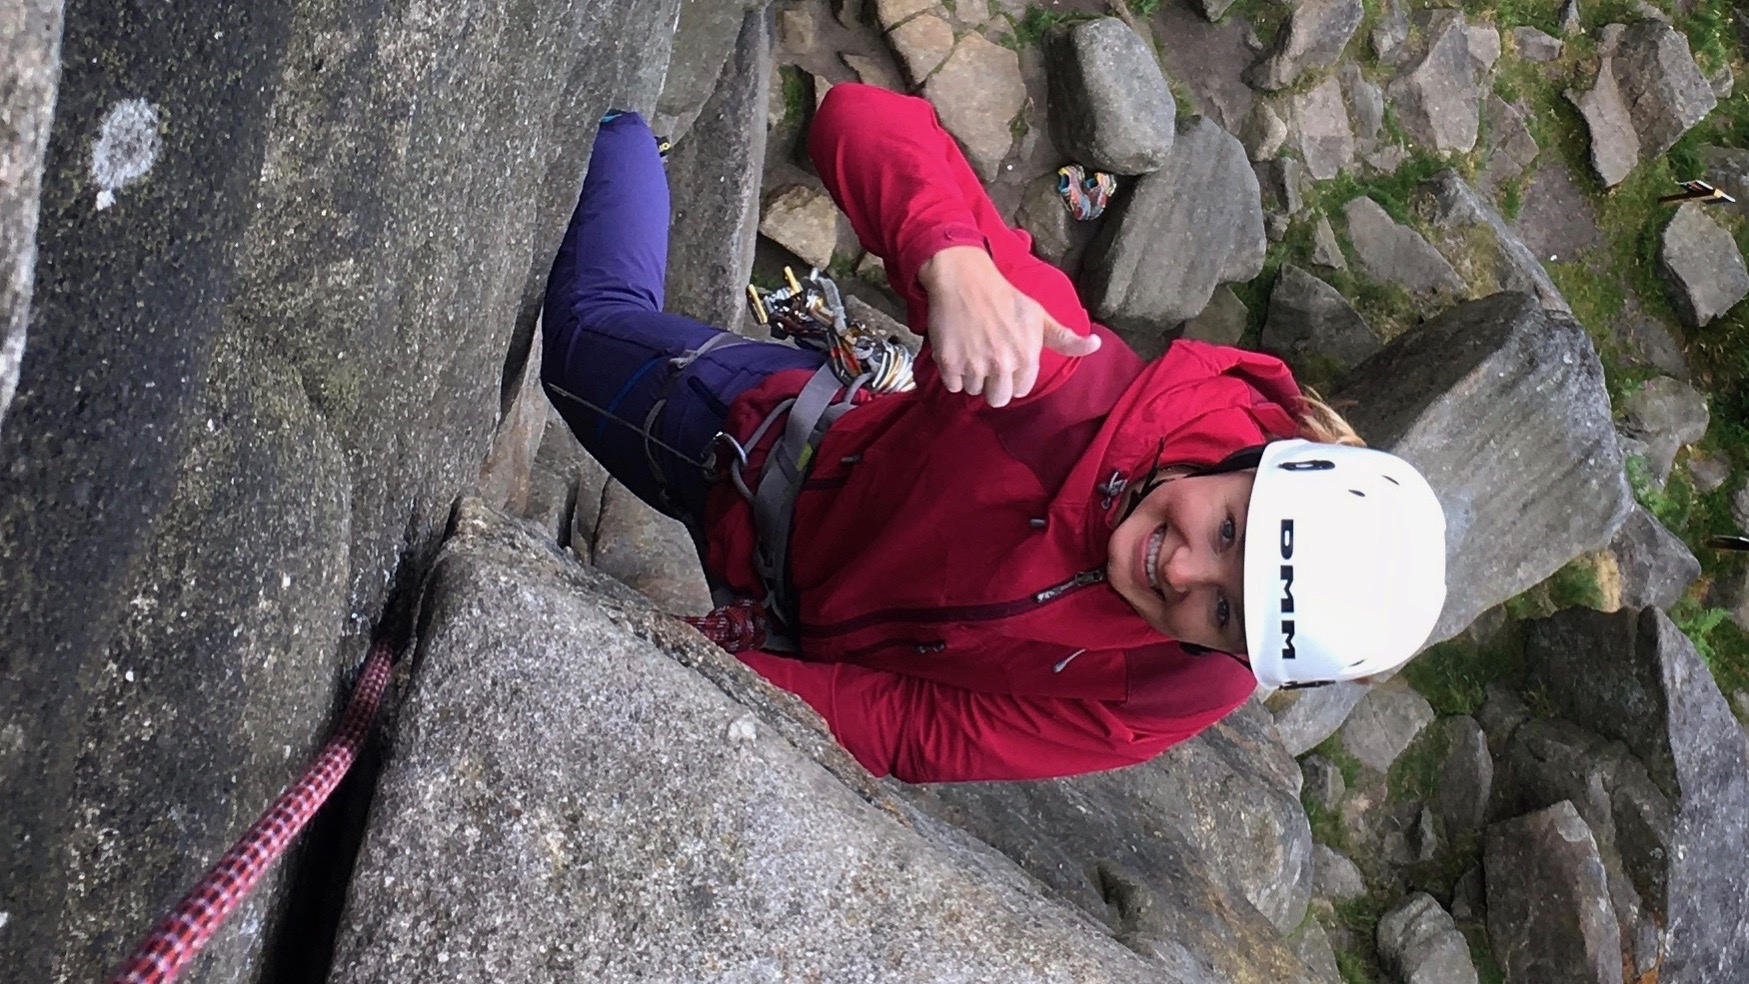 A lady smiles and gives the thumbs up while climbing at Stanage Edge on a rock climbing course.